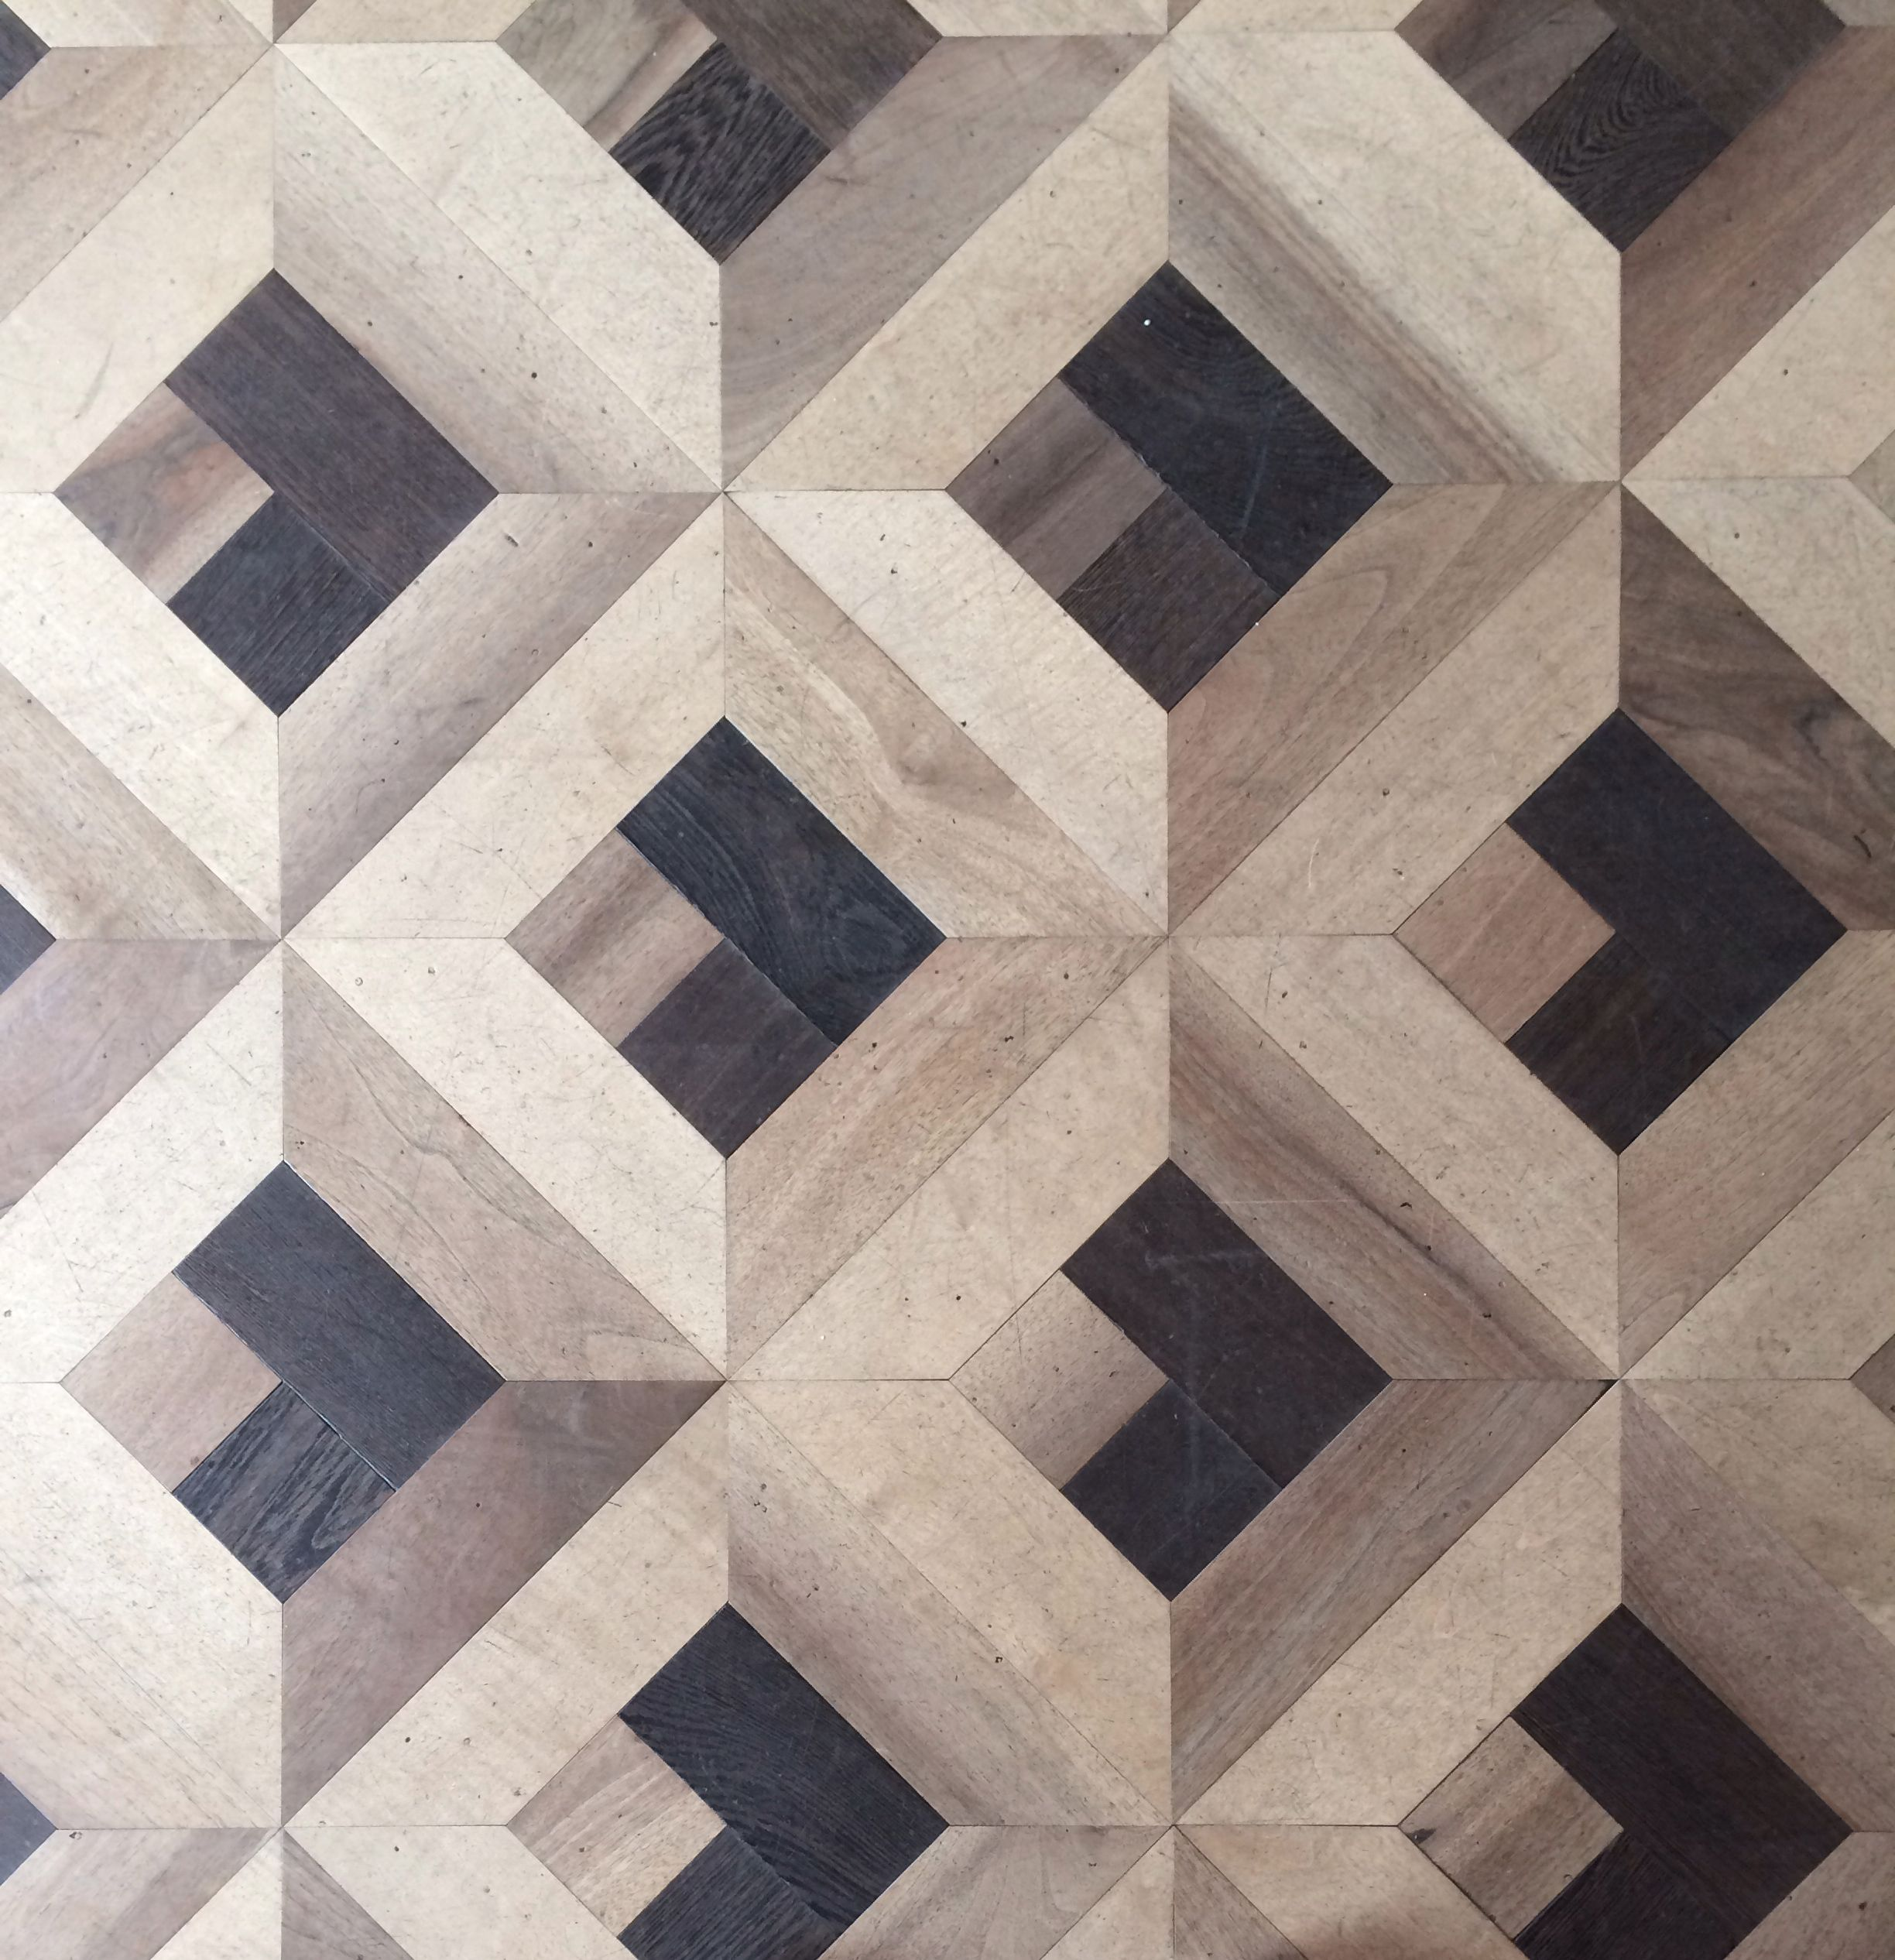 Reminds me of the building facade tile pattern pinterest timber floors at the grand hotel tremezzo the different tones of timber and the way the parquet is laid creates a dramatic effect dailygadgetfo Choice Image